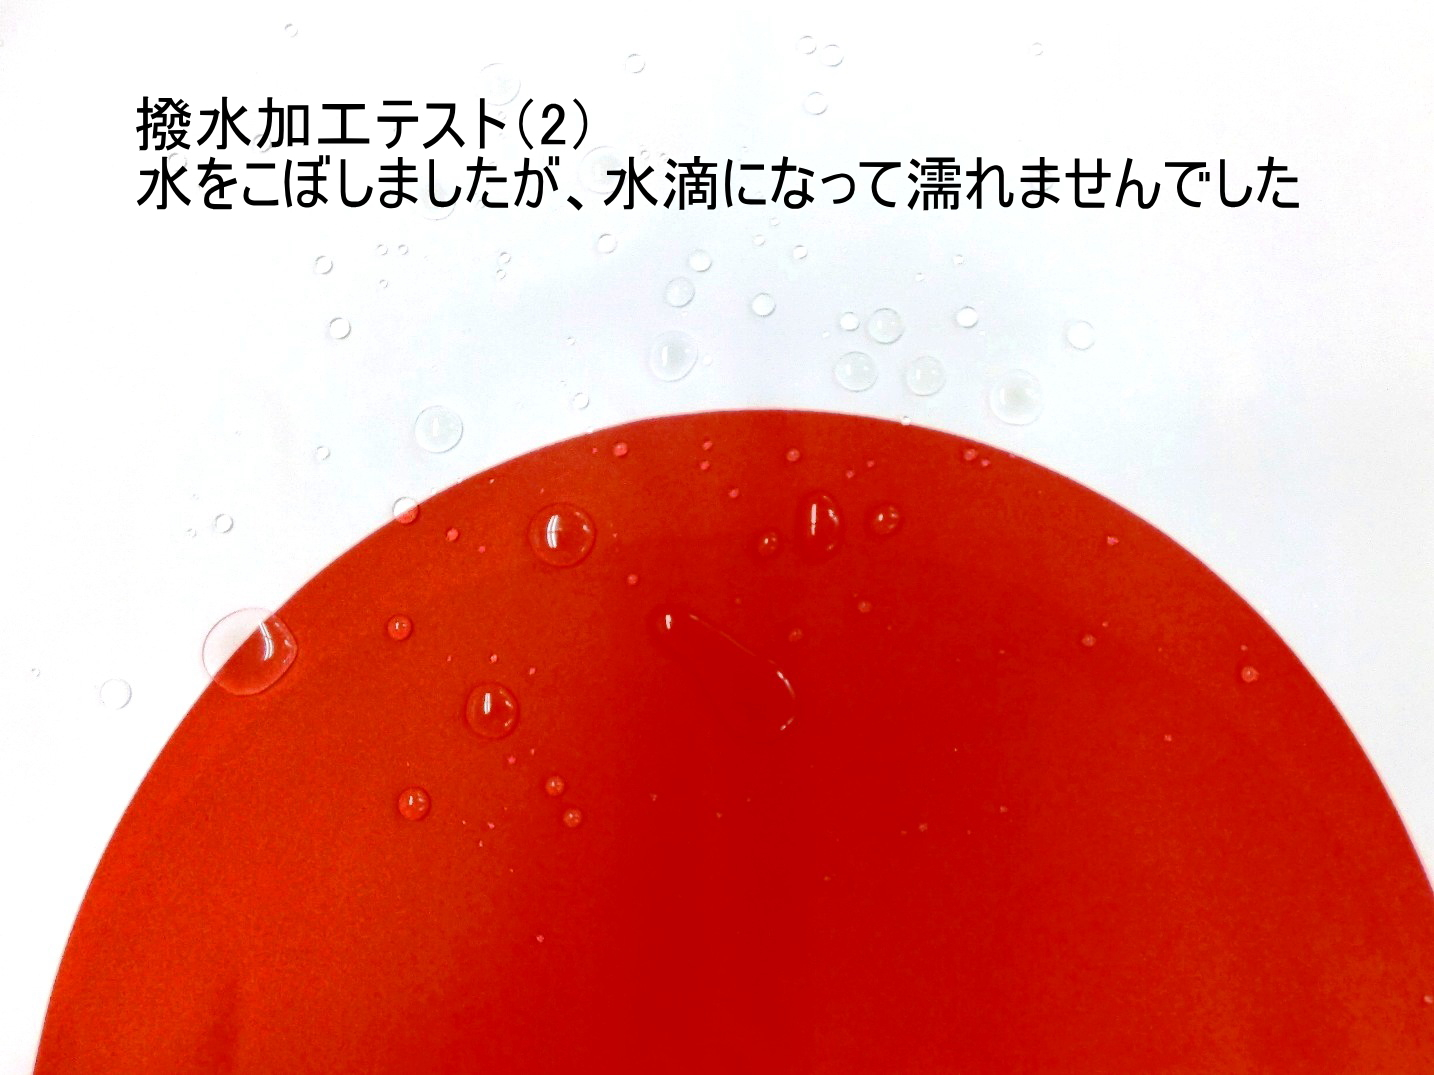 Hinomaru flag セットテトロン flag with support